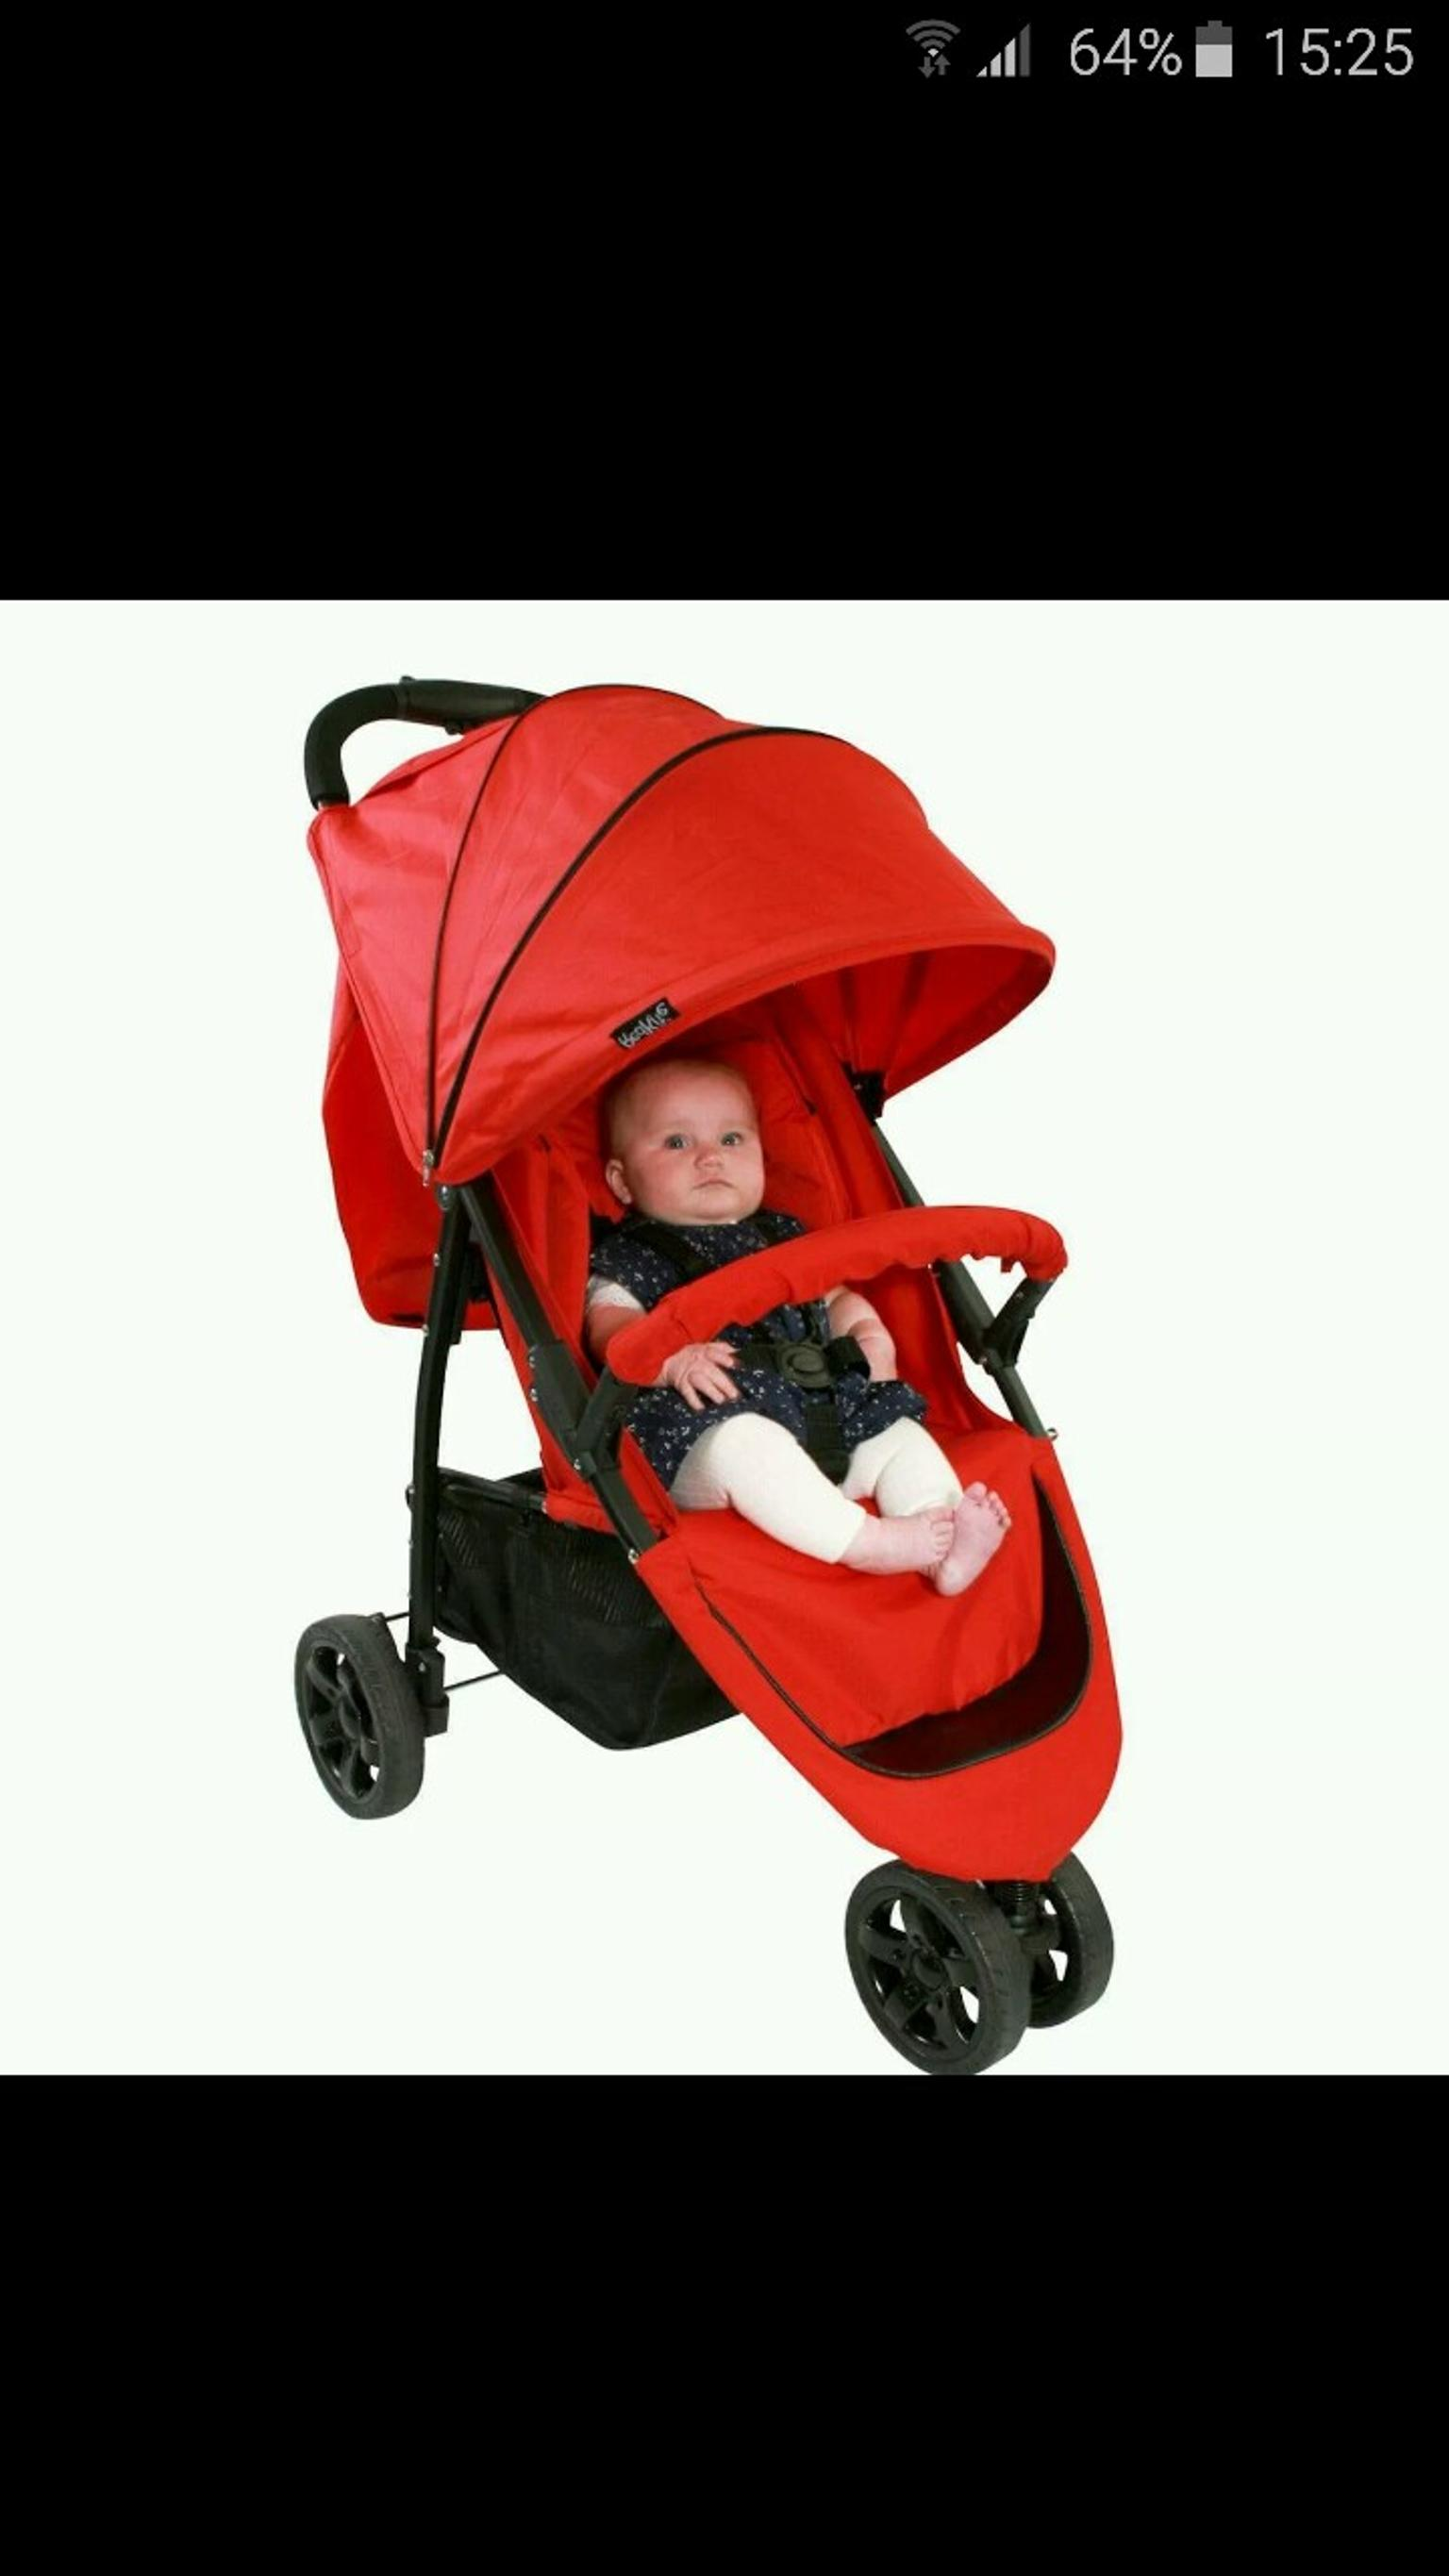 Baby Parasol compatible with Red Kite Push me urban jogger Red